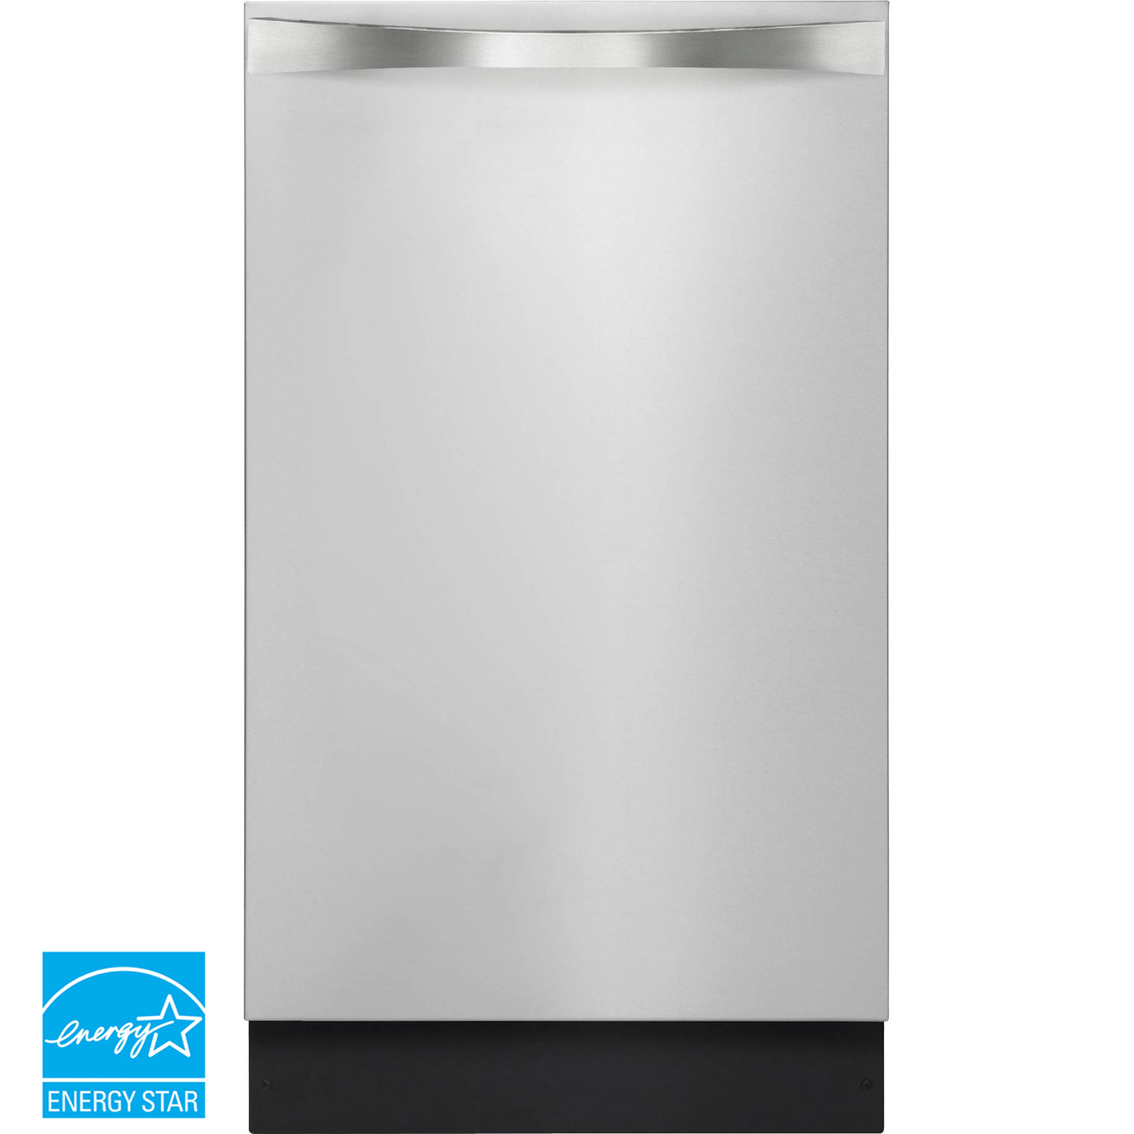 Kenmore Dishwasher Reviews >> Kenmore Elite 18 In Built In Dishwasher Dishwashers